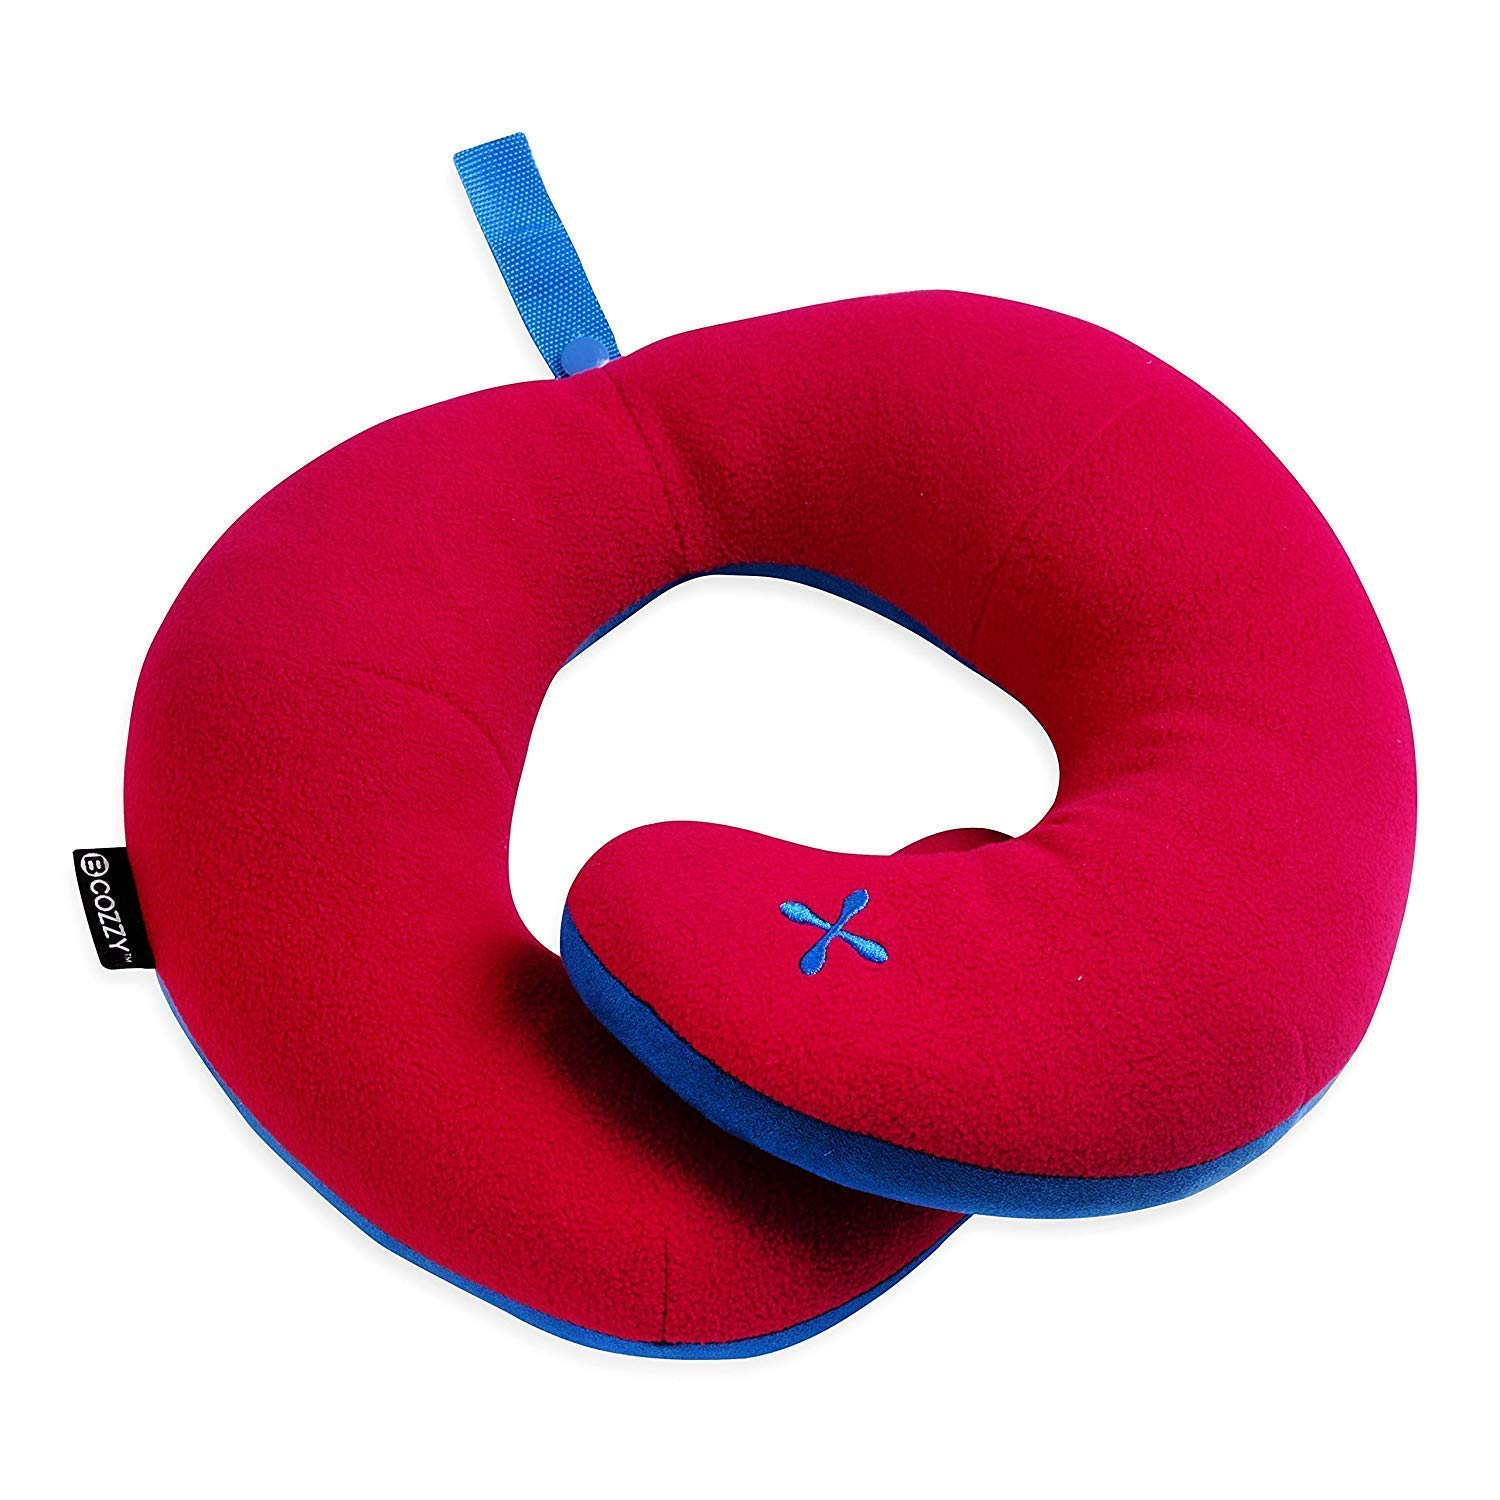 BCOZZY Chin Supporting Travel Pillow - Supports The Head, Neck and Chin in in Any Sitting Position. A Patented Product. (RED, Child)